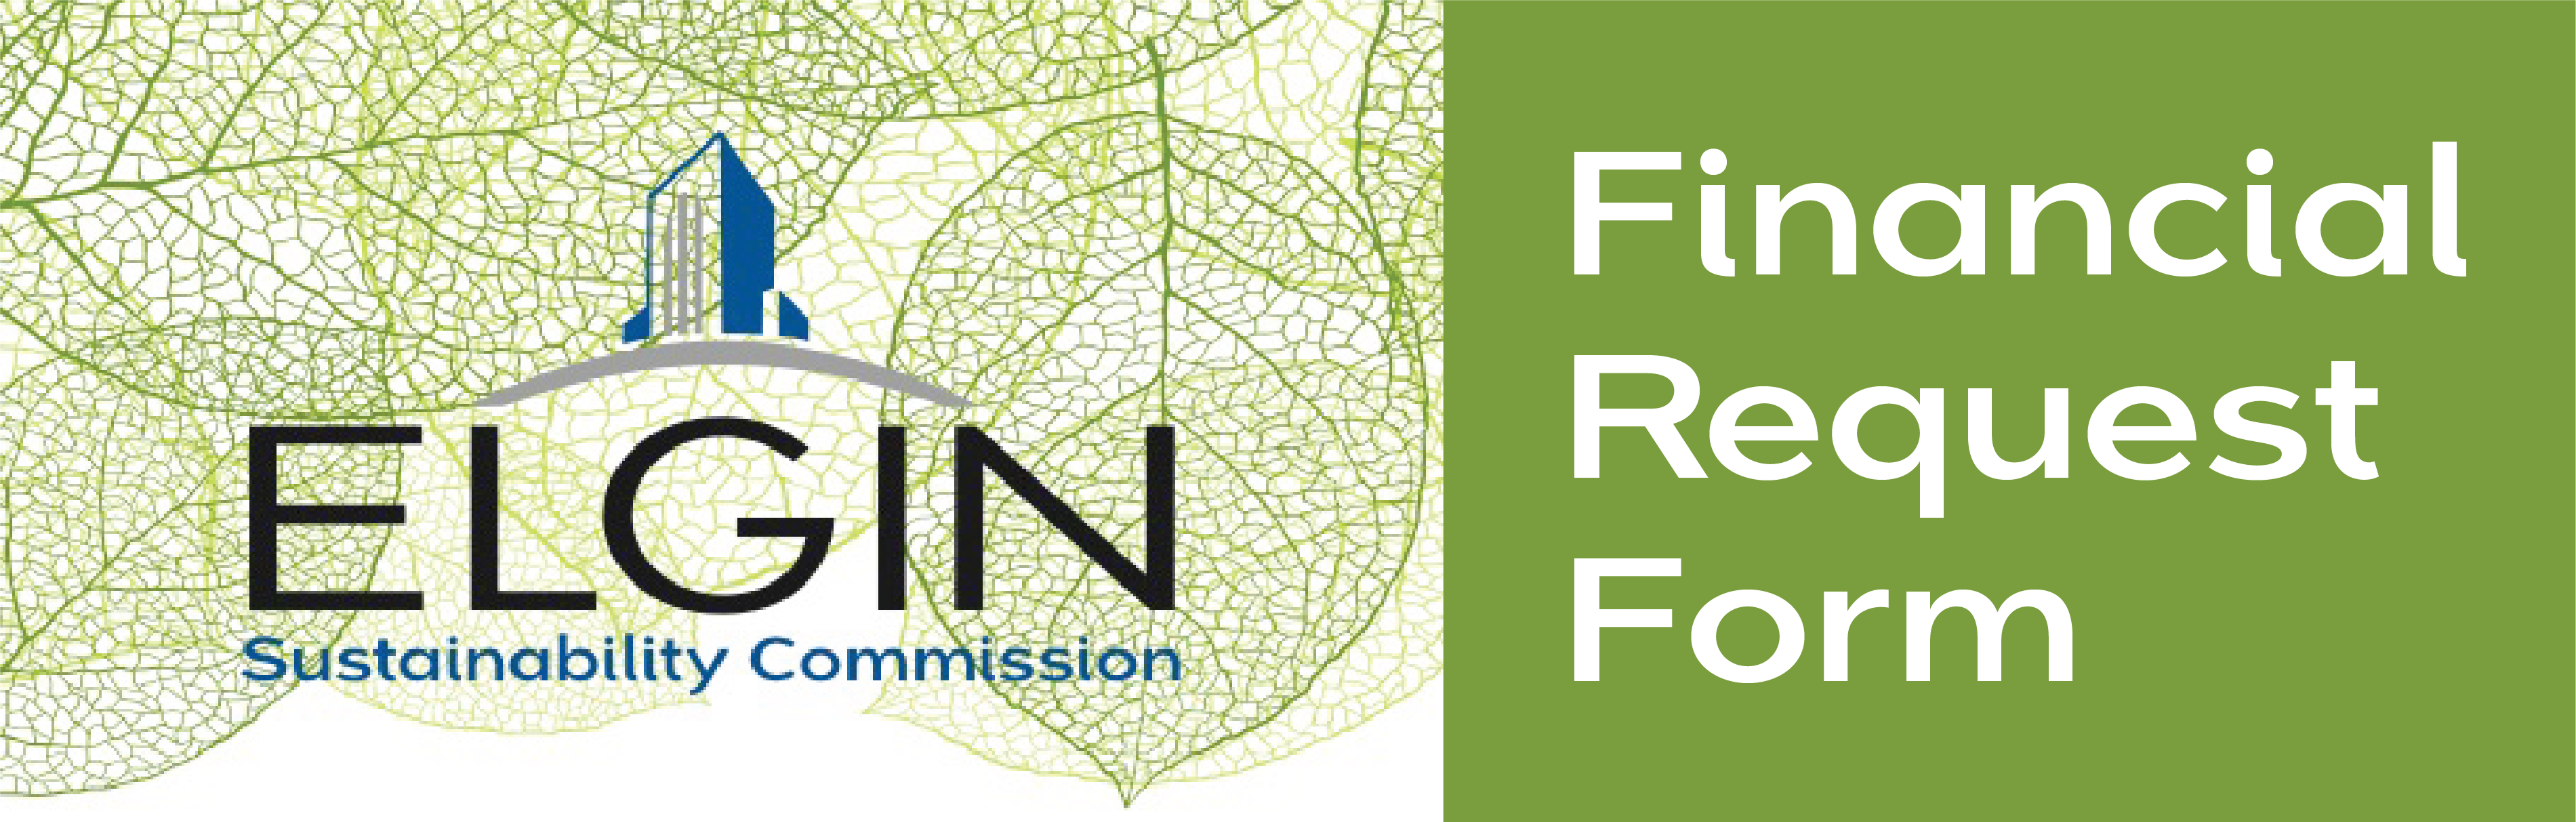 Financial Request Form required for any requests made for Sustainability Commission Funds